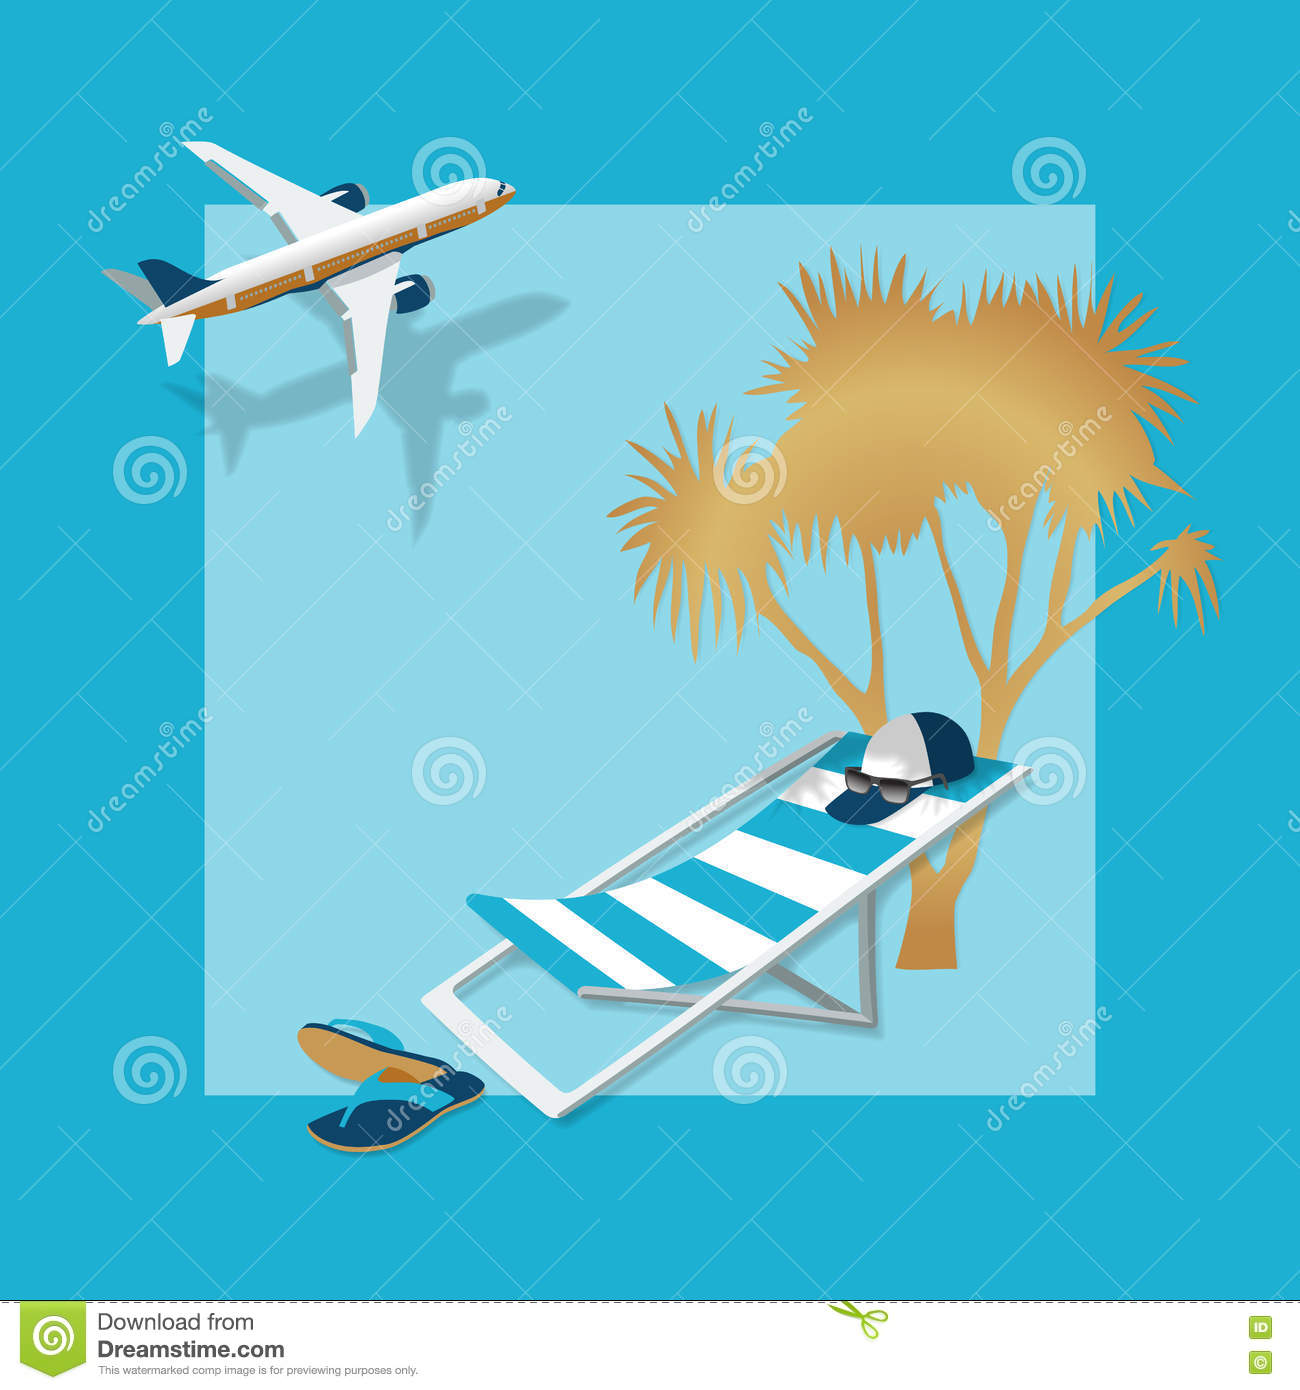 air travel beach chairs folding chair mechanism summer vacation stock vector illustration of airplane 72109115 summertime traveling template with accessories palm hat flip flops and sunglasses on a blue background